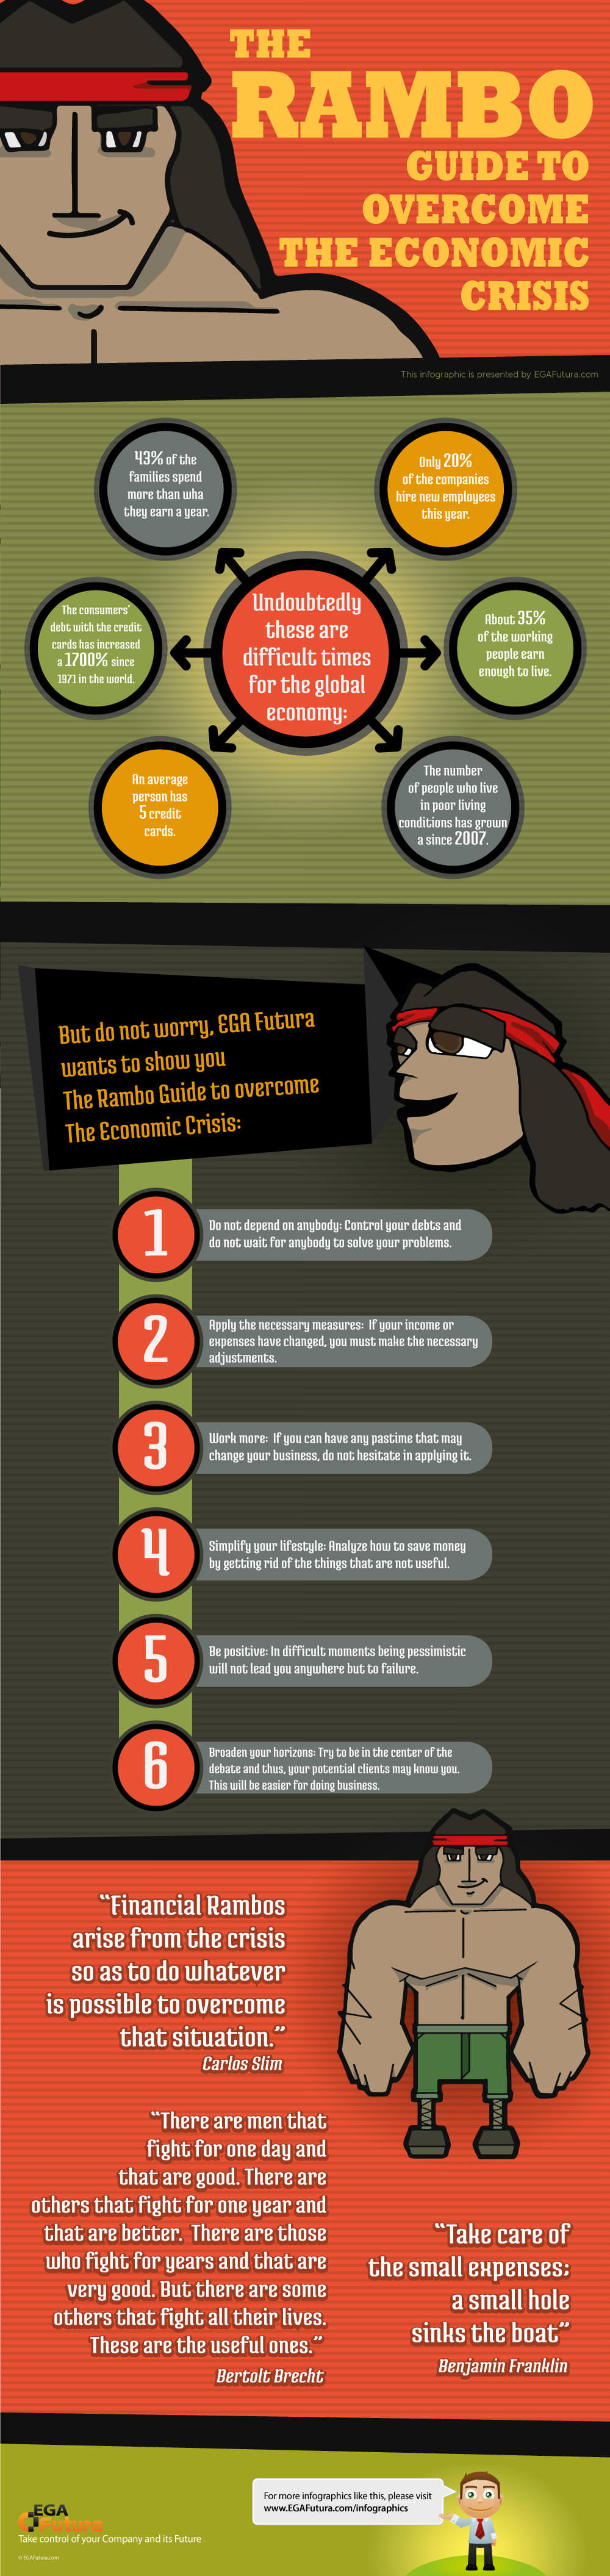 Infographic: The Rambo Guide to overcome the Economic Crisis